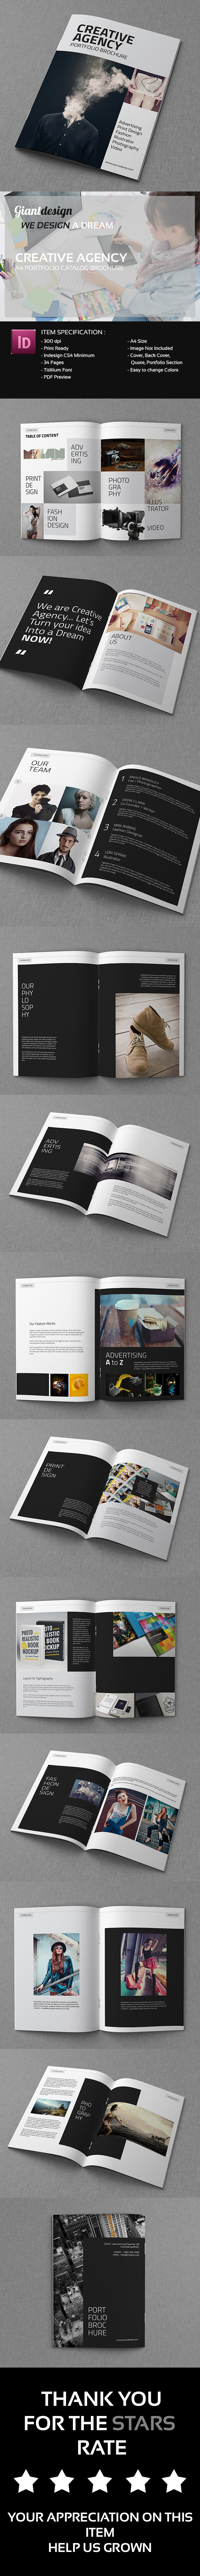 Creative Agency - A4 Portfolio Catalog Brochure on Behance